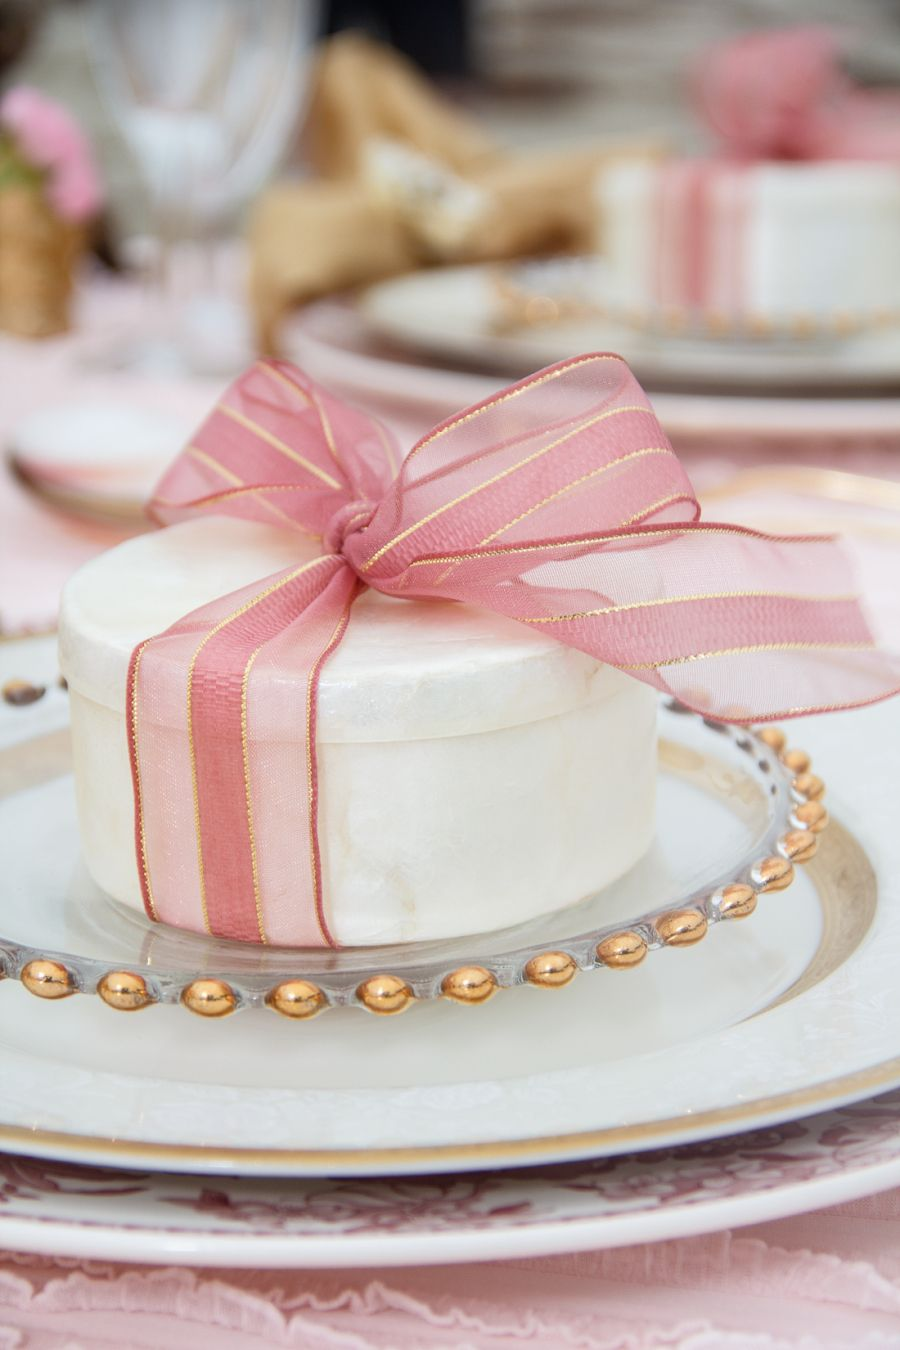 Christmas in Pink   ❄ My Pink Christmas ❄   Pinterest   Pink ...